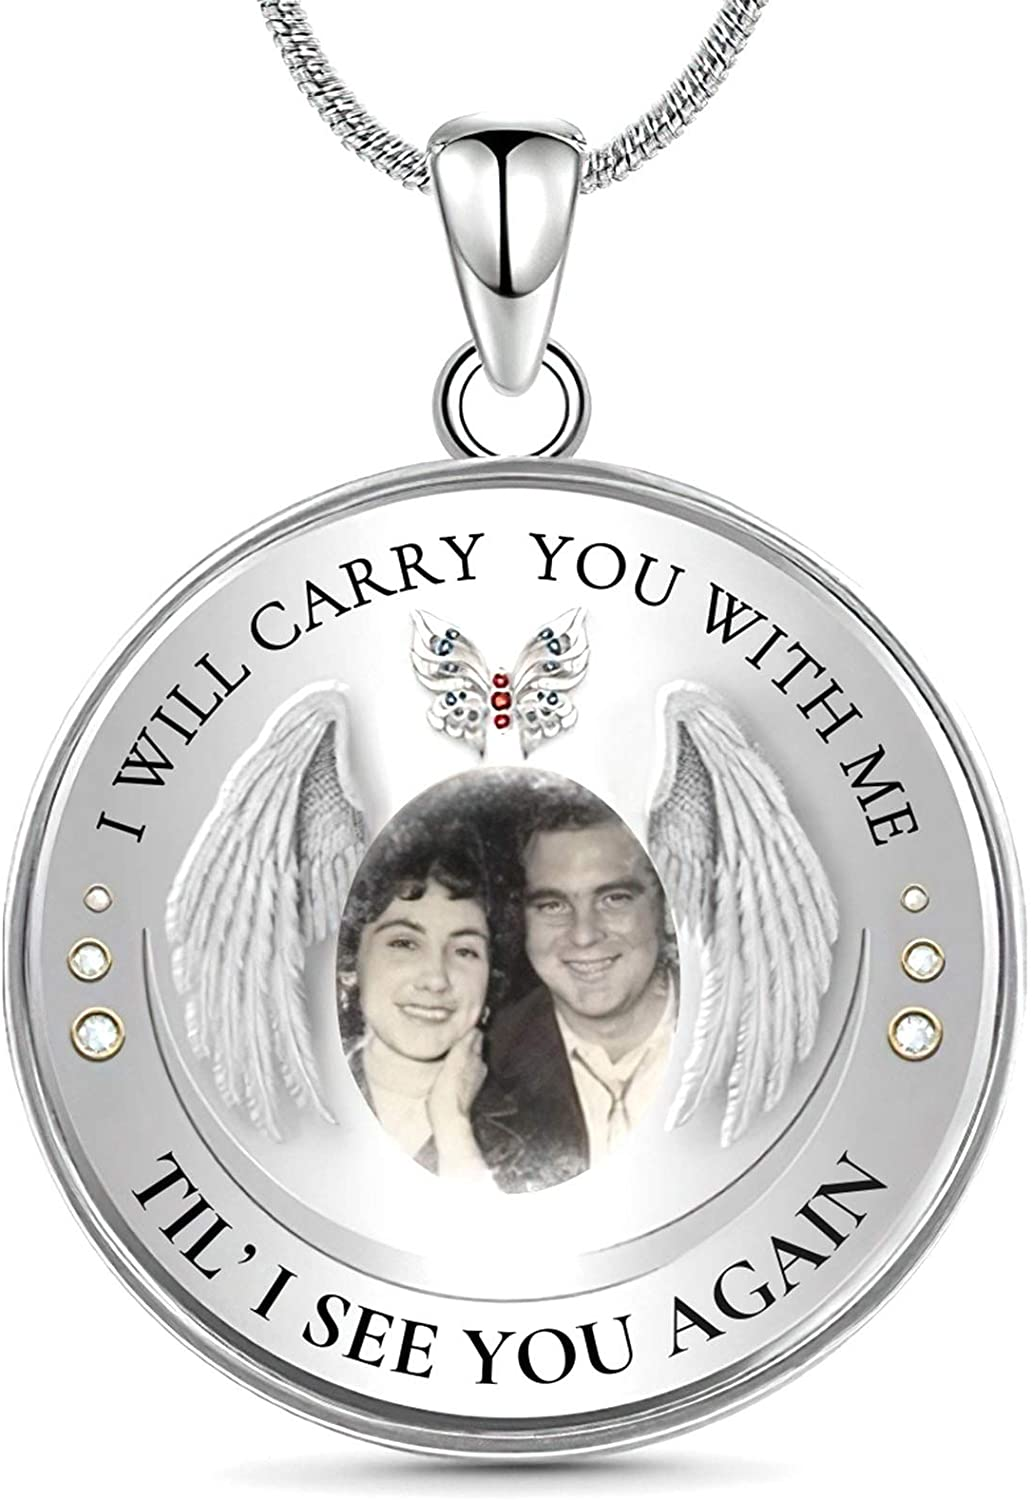 Drawelry Quantity limited Credence Personalized Photo Memorial Customized Necklace Picture